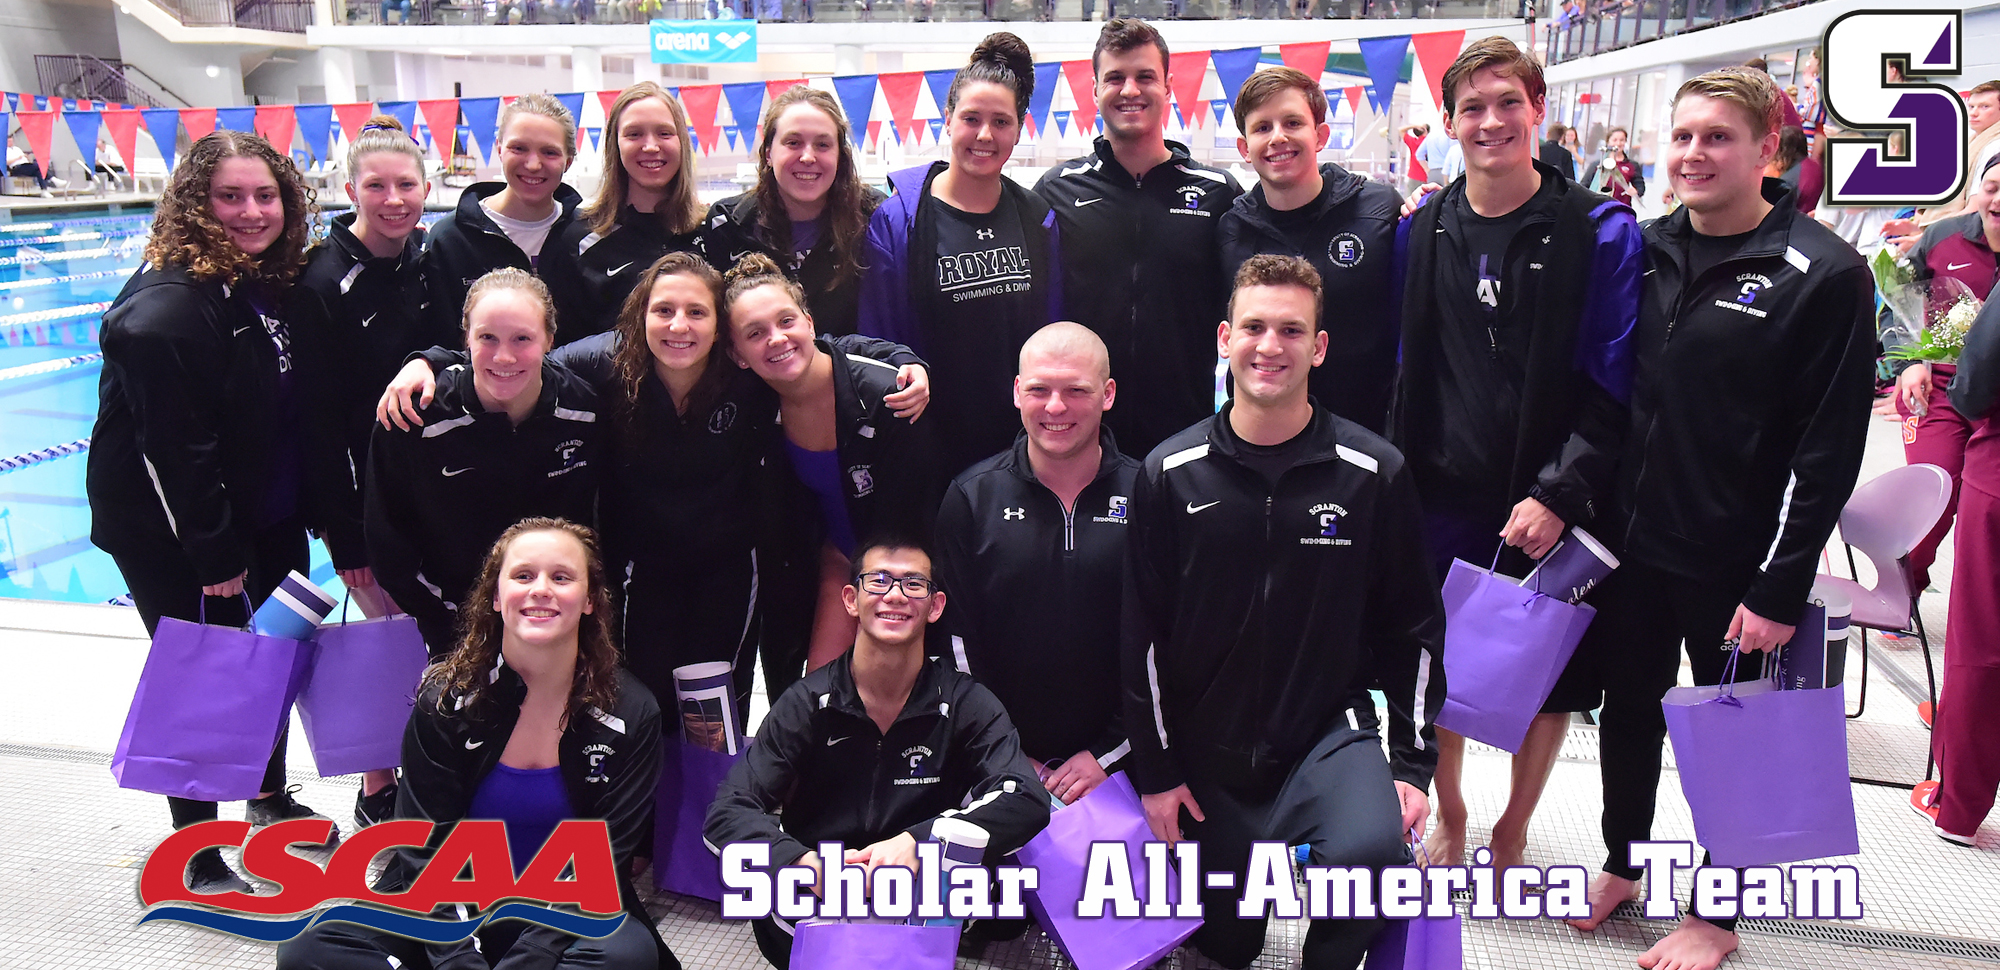 Men's, Women's Swimming & Diving Squads Claim CSCAA Scholar All-America Team Honors